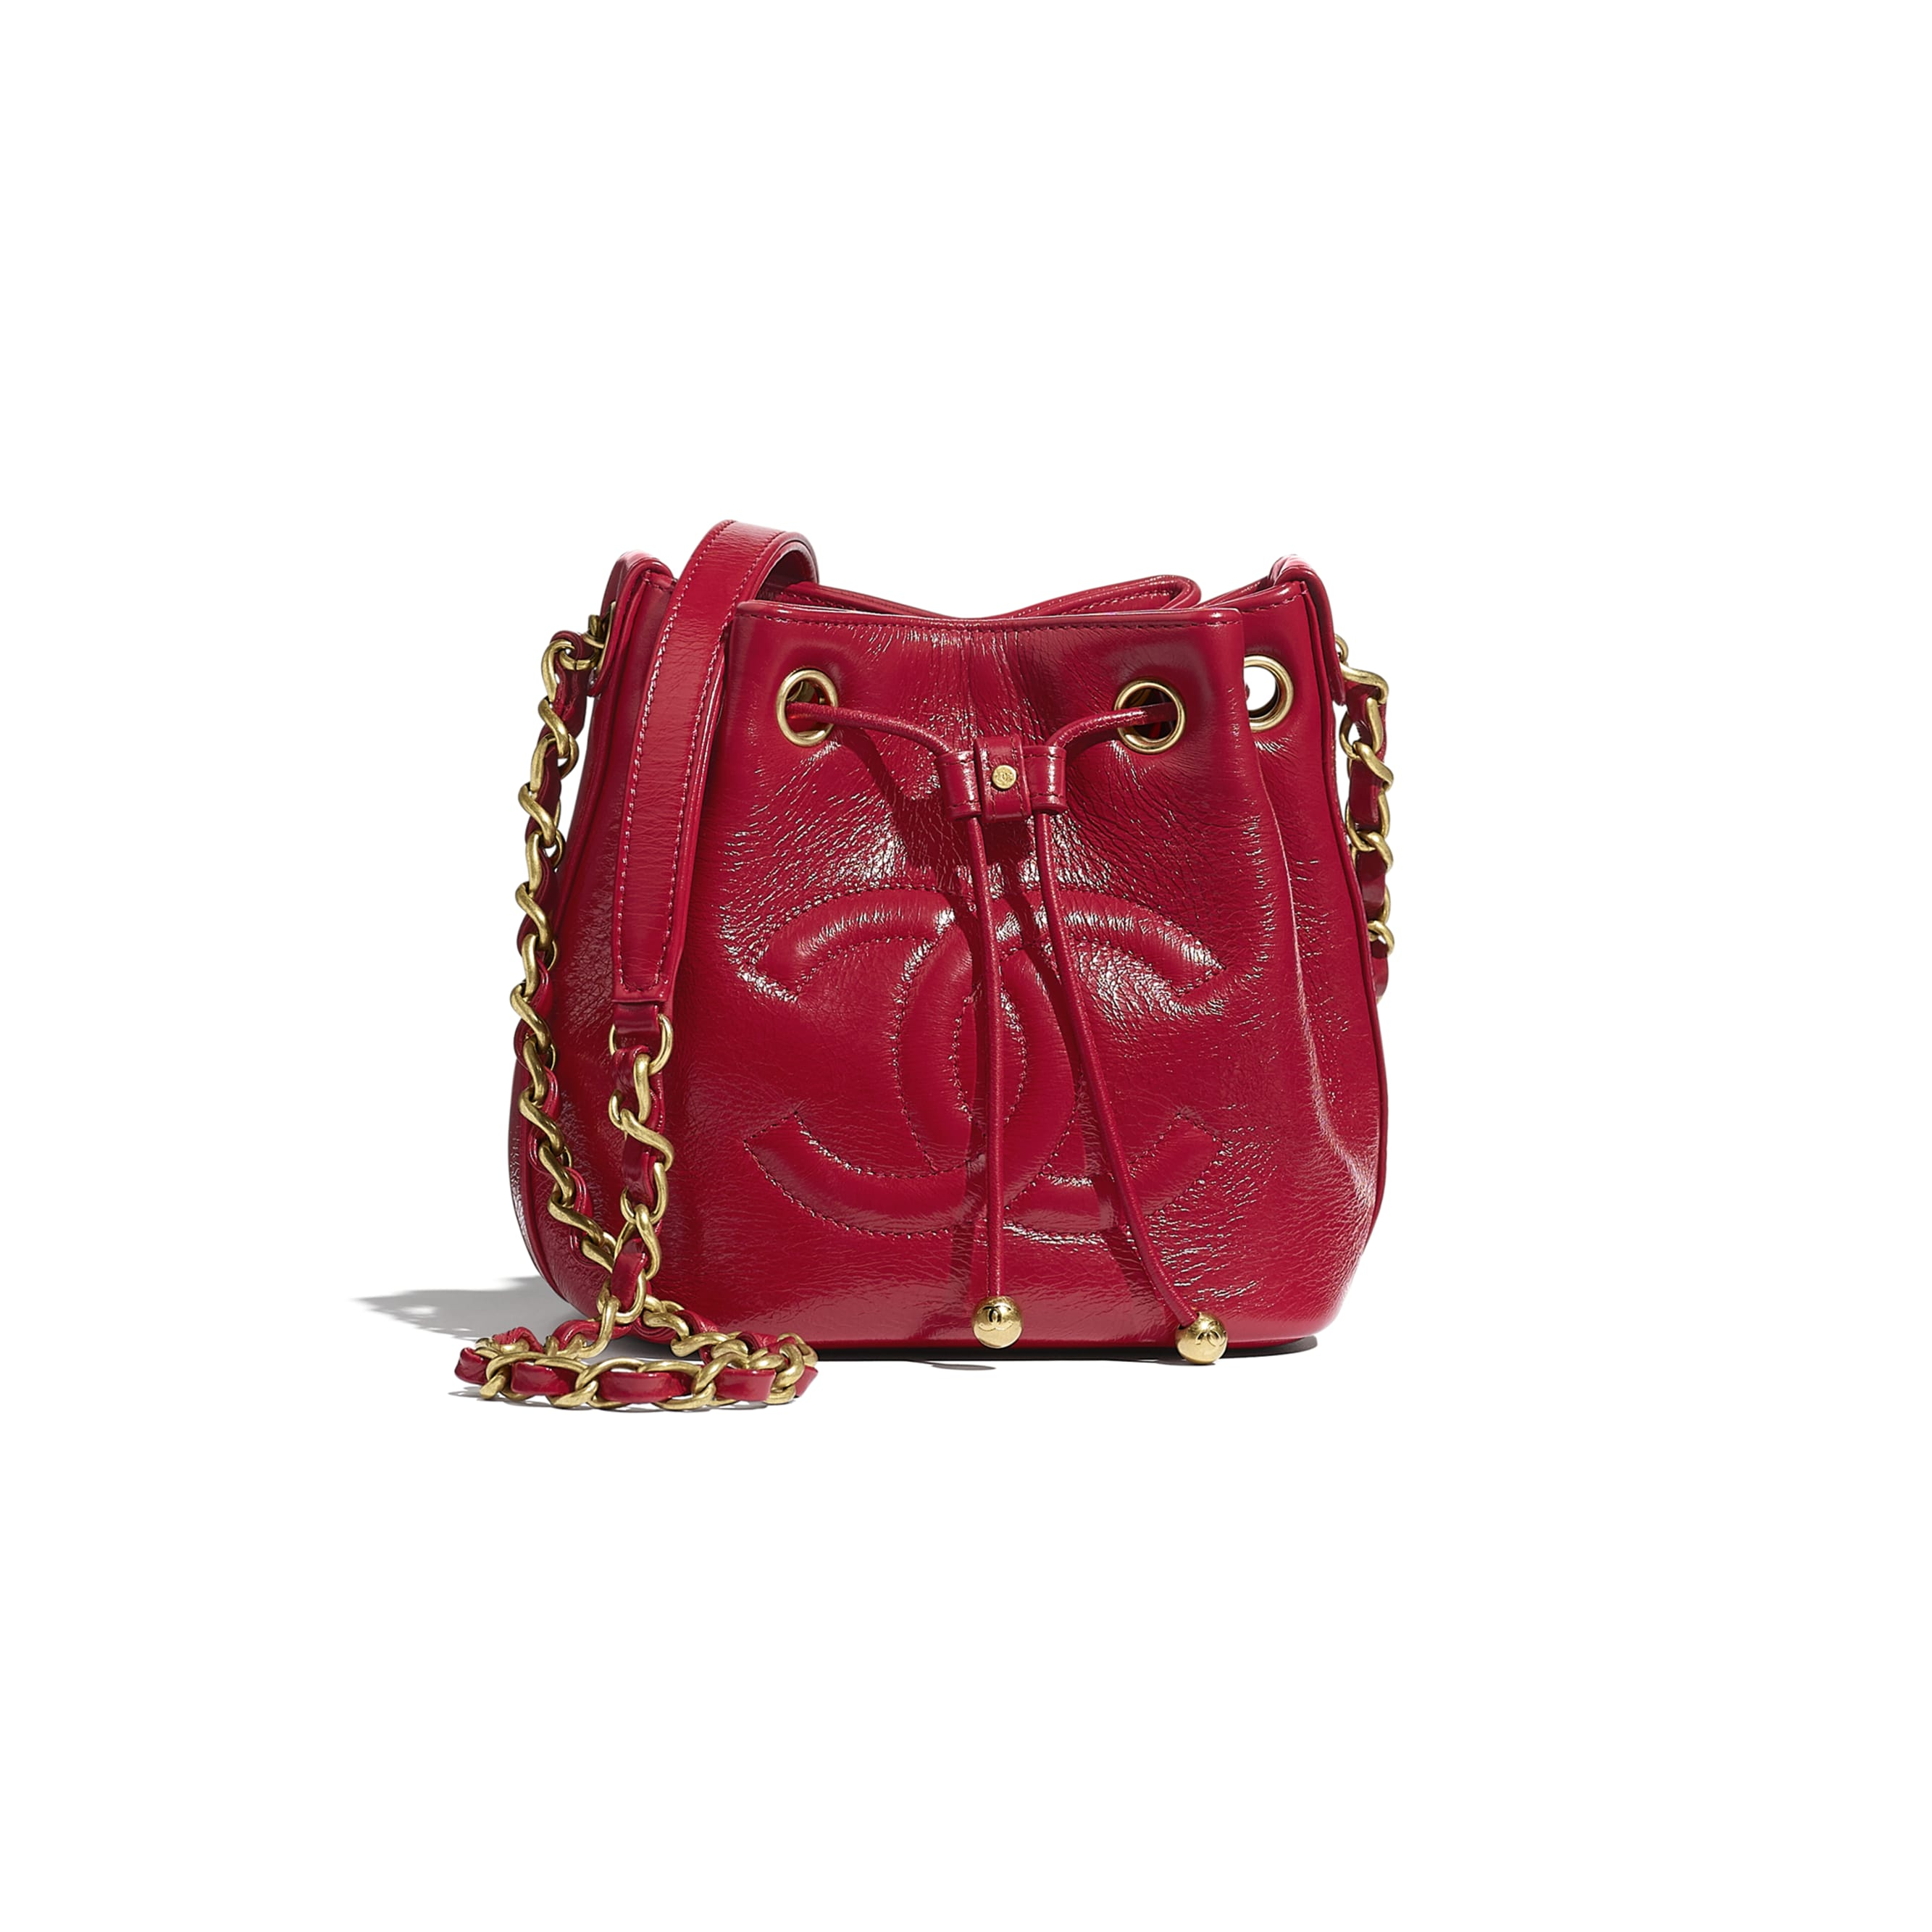 Drawstring Bag - Red - Shiny Aged Calfskin & Gold-Tone Metal - CHANEL - Default view - see standard sized version